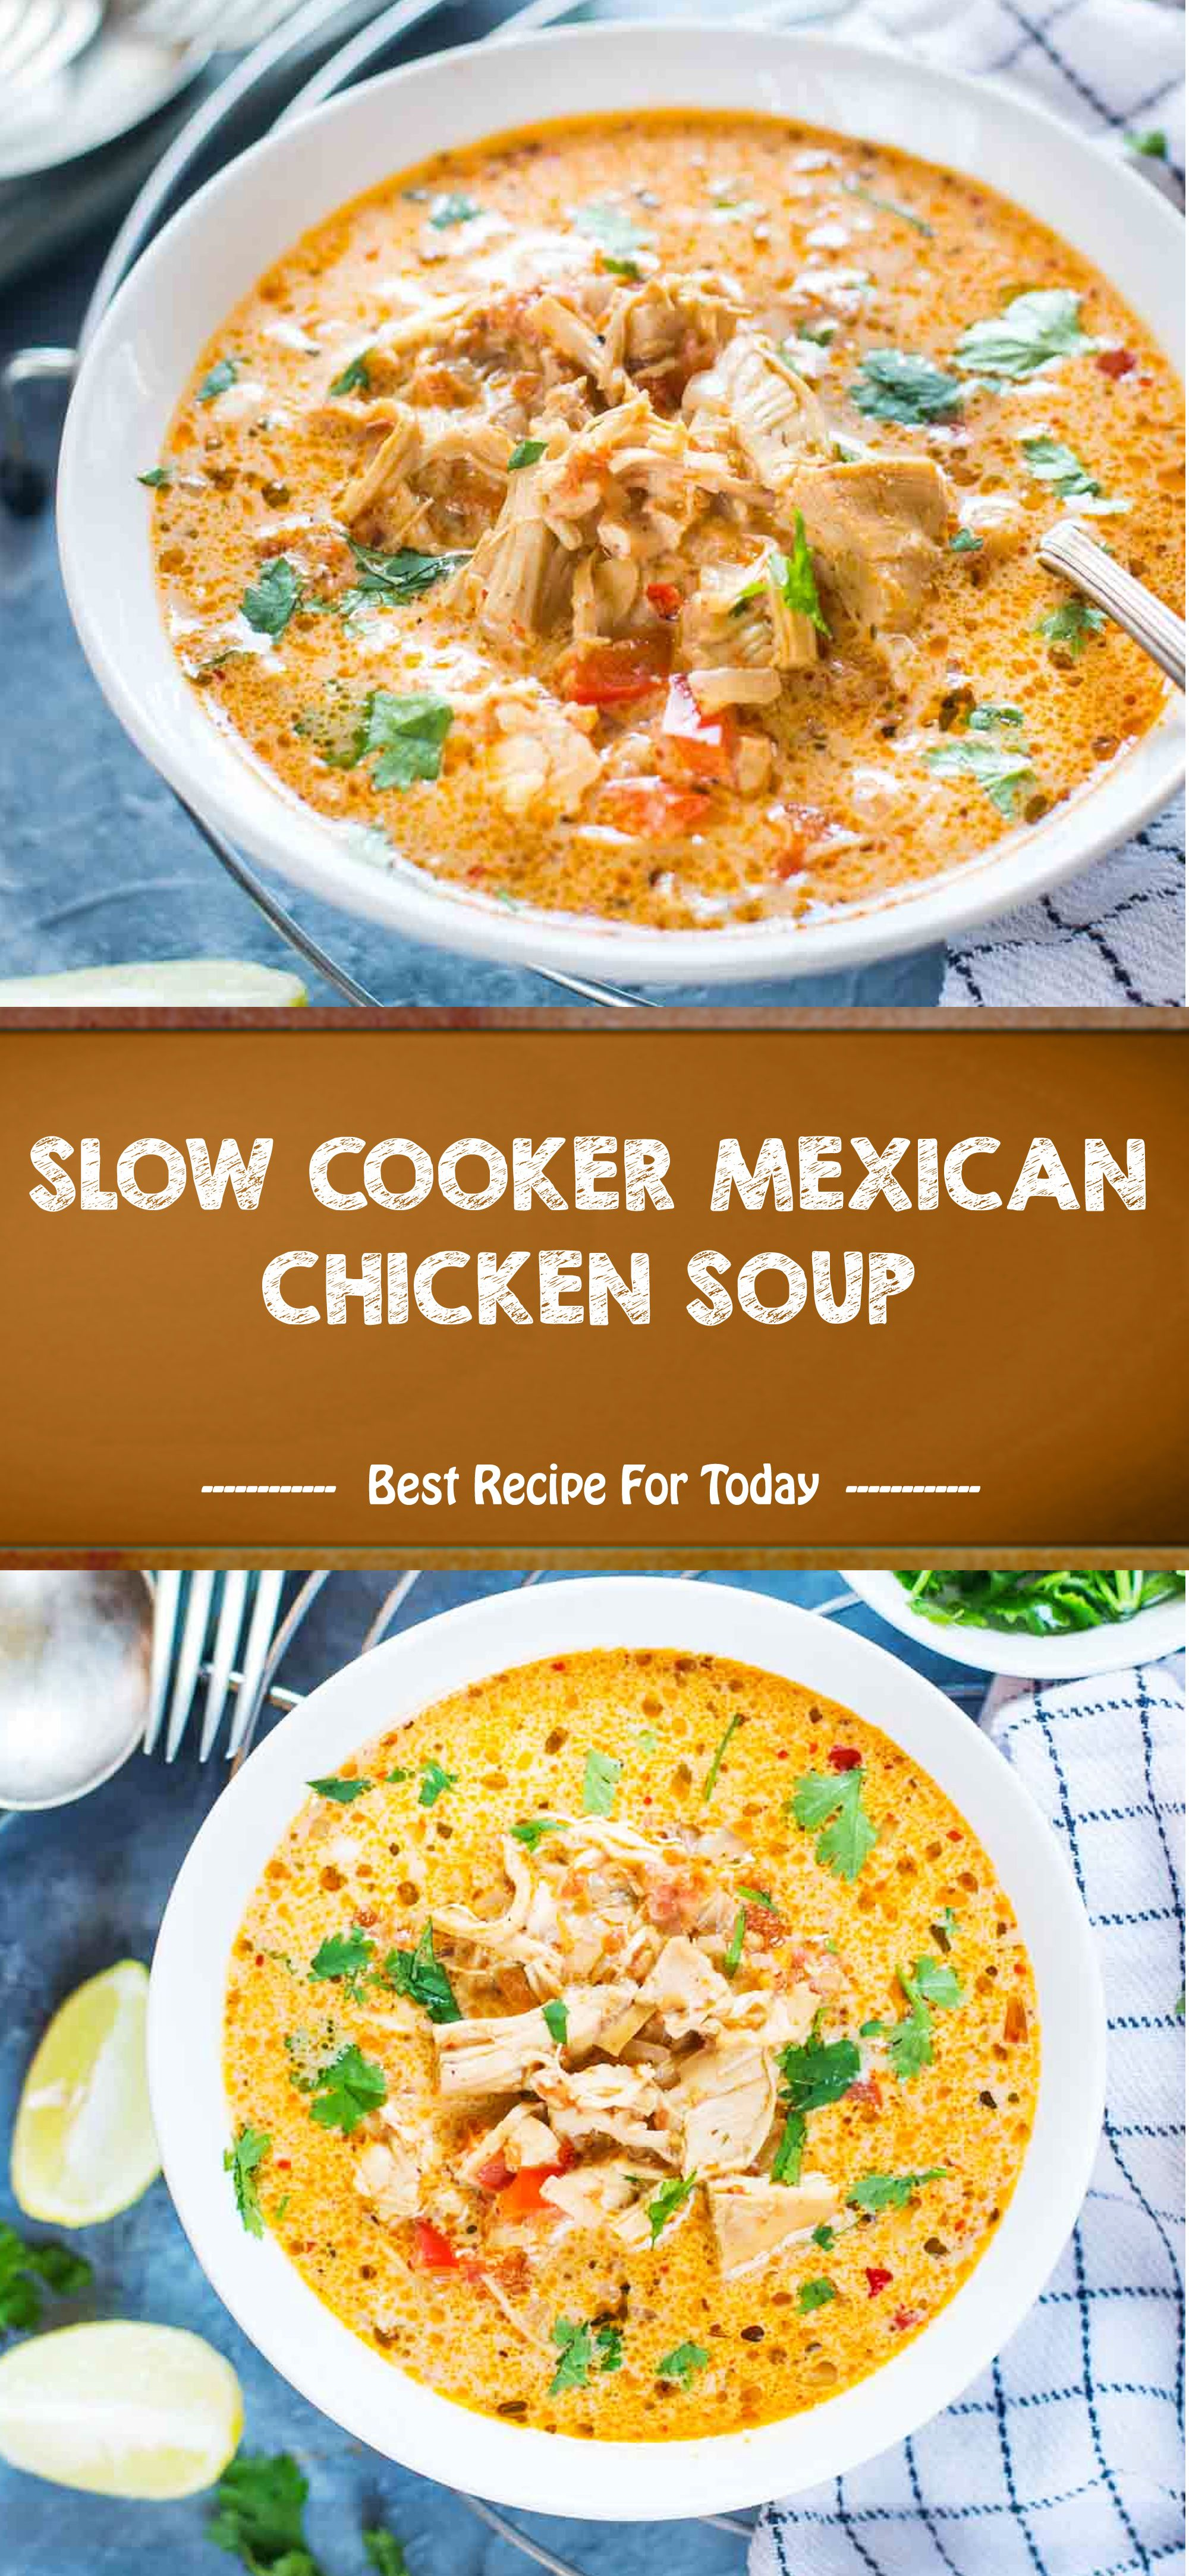 Photo of SLOW COOKER MEXICAN CHICKEN SOUP